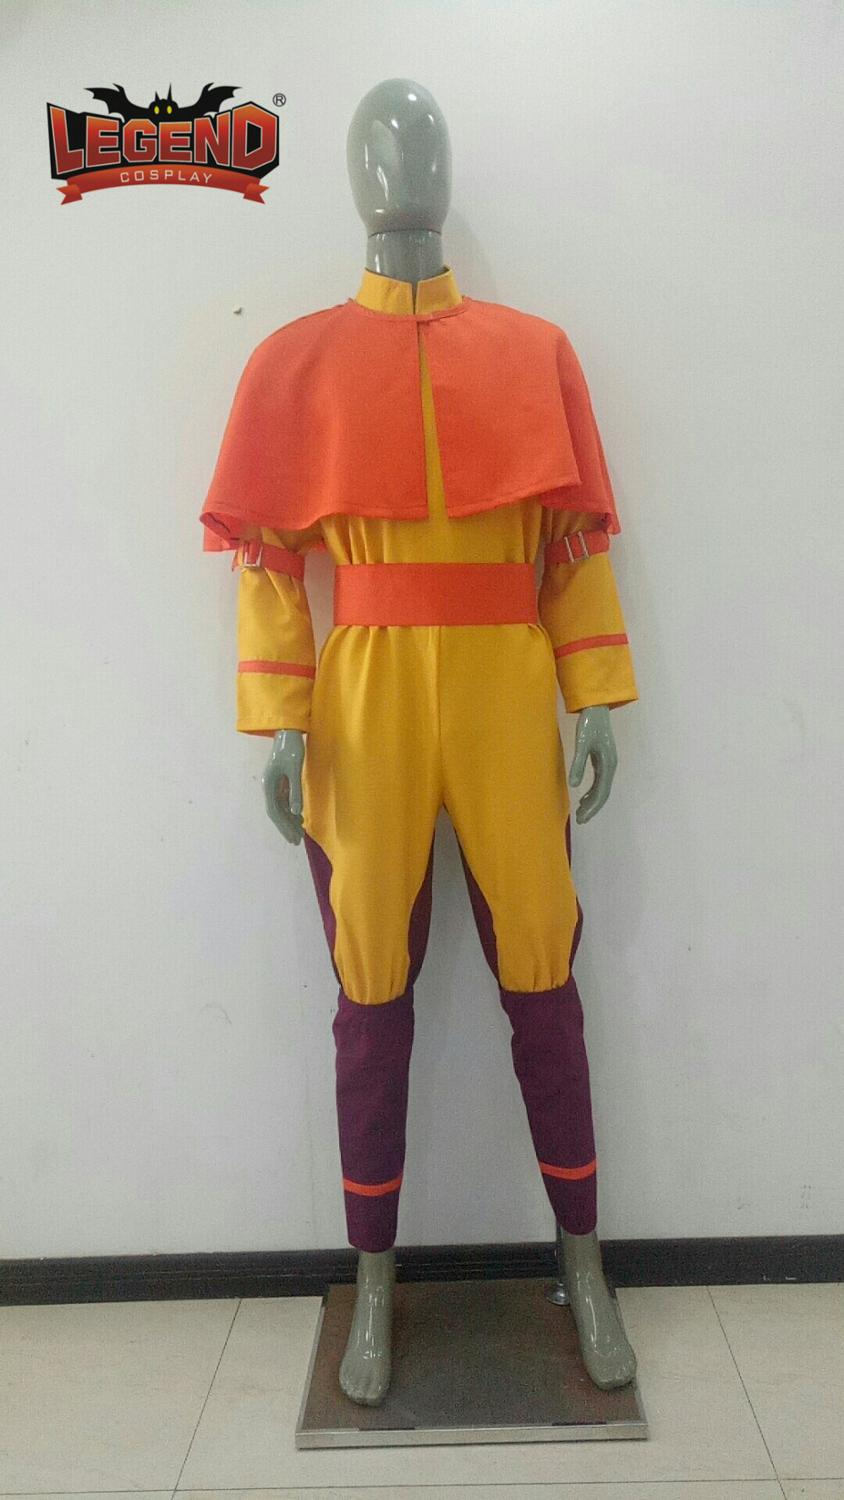 Anime <font><b>Avatar</b></font> The Last Airbender Bumi <font><b>Avatar</b></font> <font><b>Aang</b></font> Cosplay Costume Custom Made image